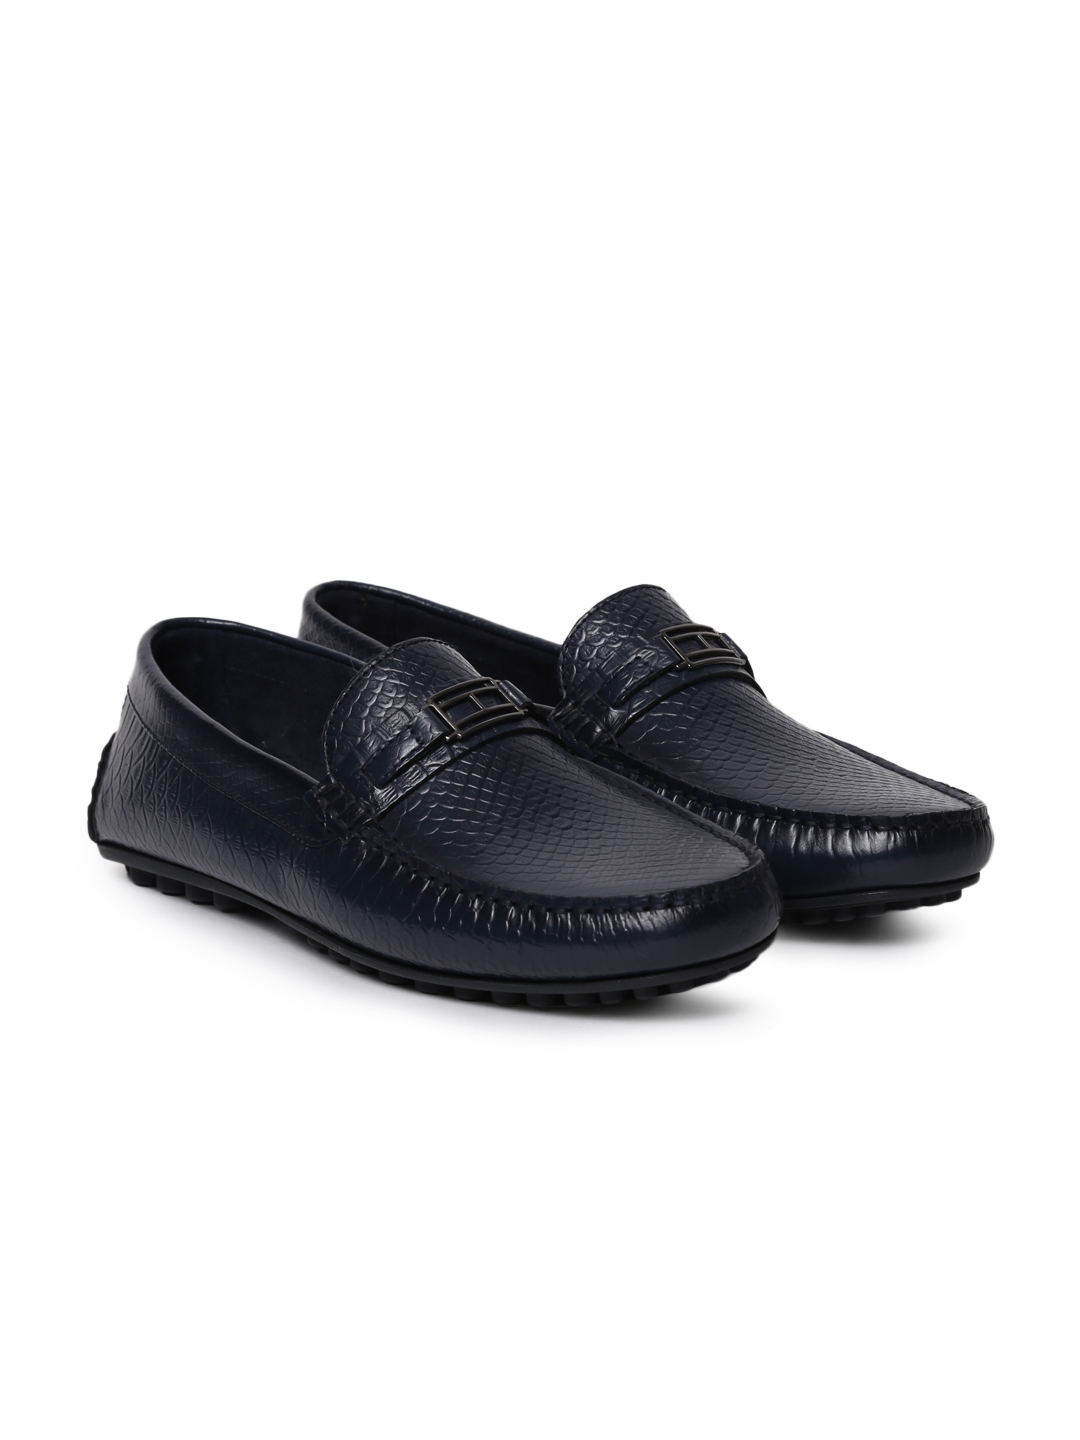 efbb2dd2b877 Buy Tommy Hilfiger Men Navy Blue Loafers - Casual Shoes for Men ...